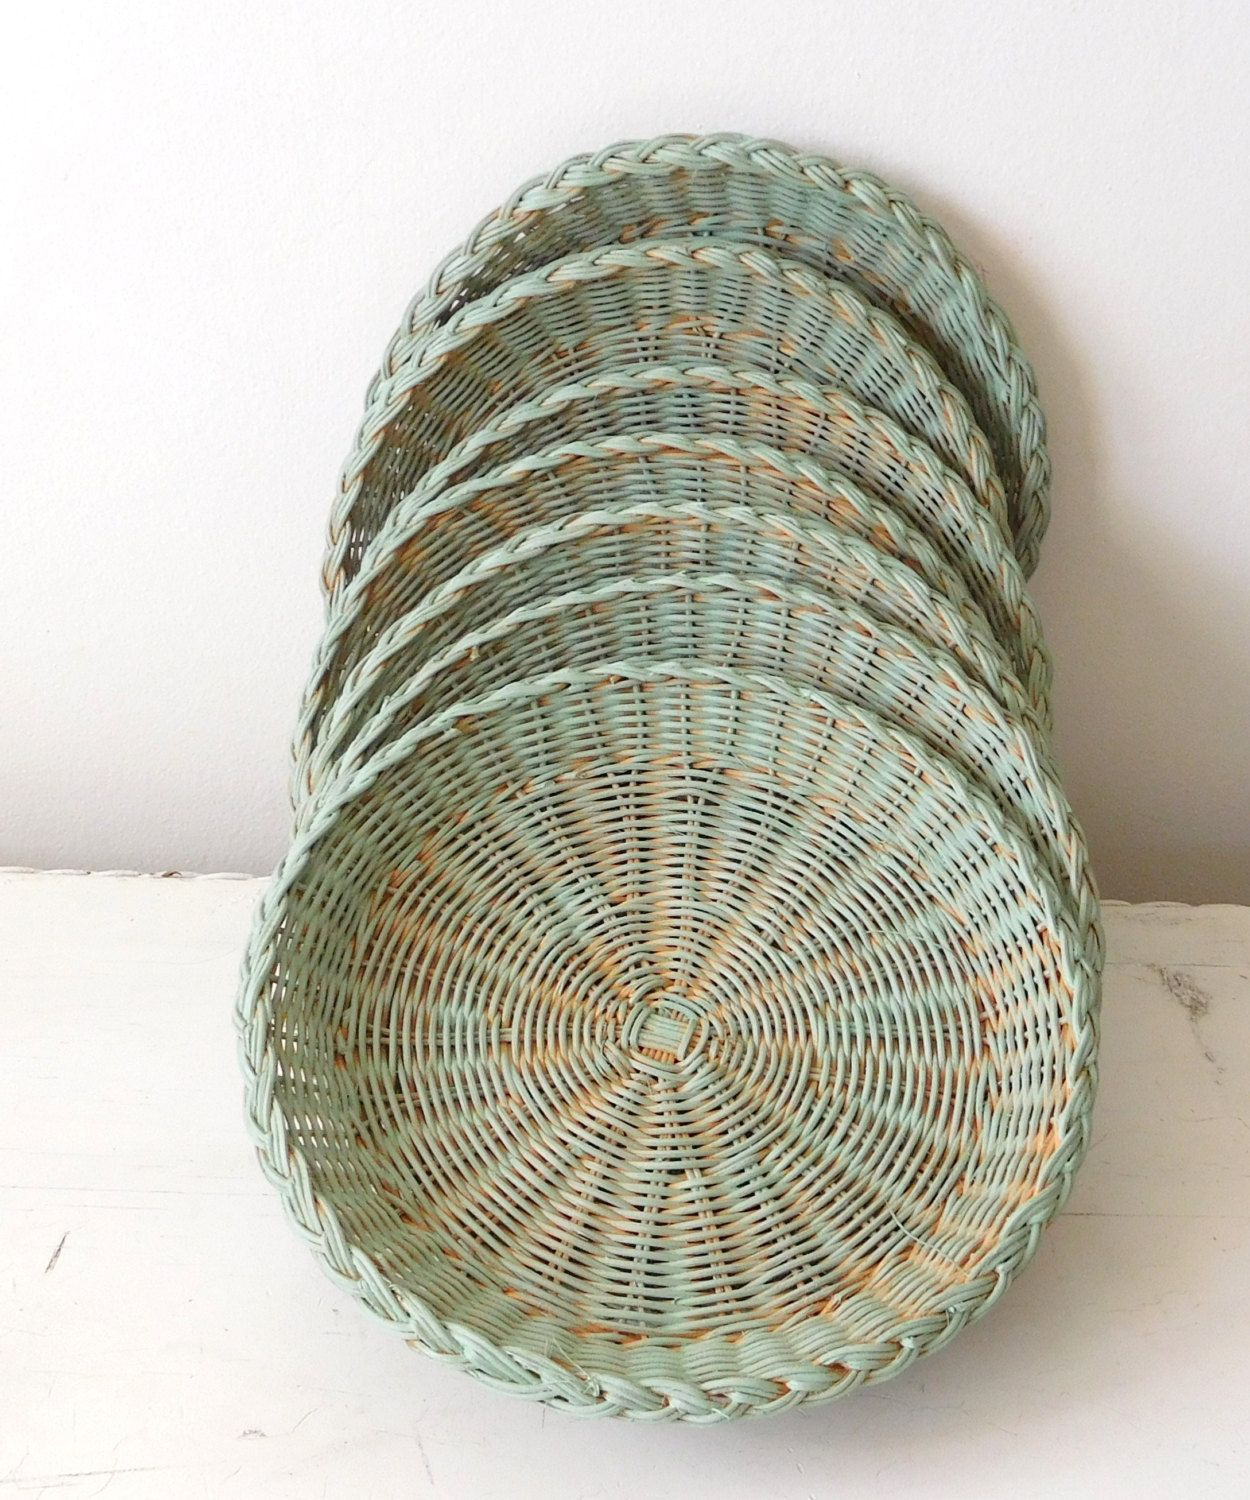 Wicker Paper Plate Holders Patina Painted Washed Picnic Accessory ... Wicker Paper Plate Holders Patina Painted Washed Picnic Accessory & Mesmerizing Wicker Plate Holders Contemporary - Best Image Engine ...